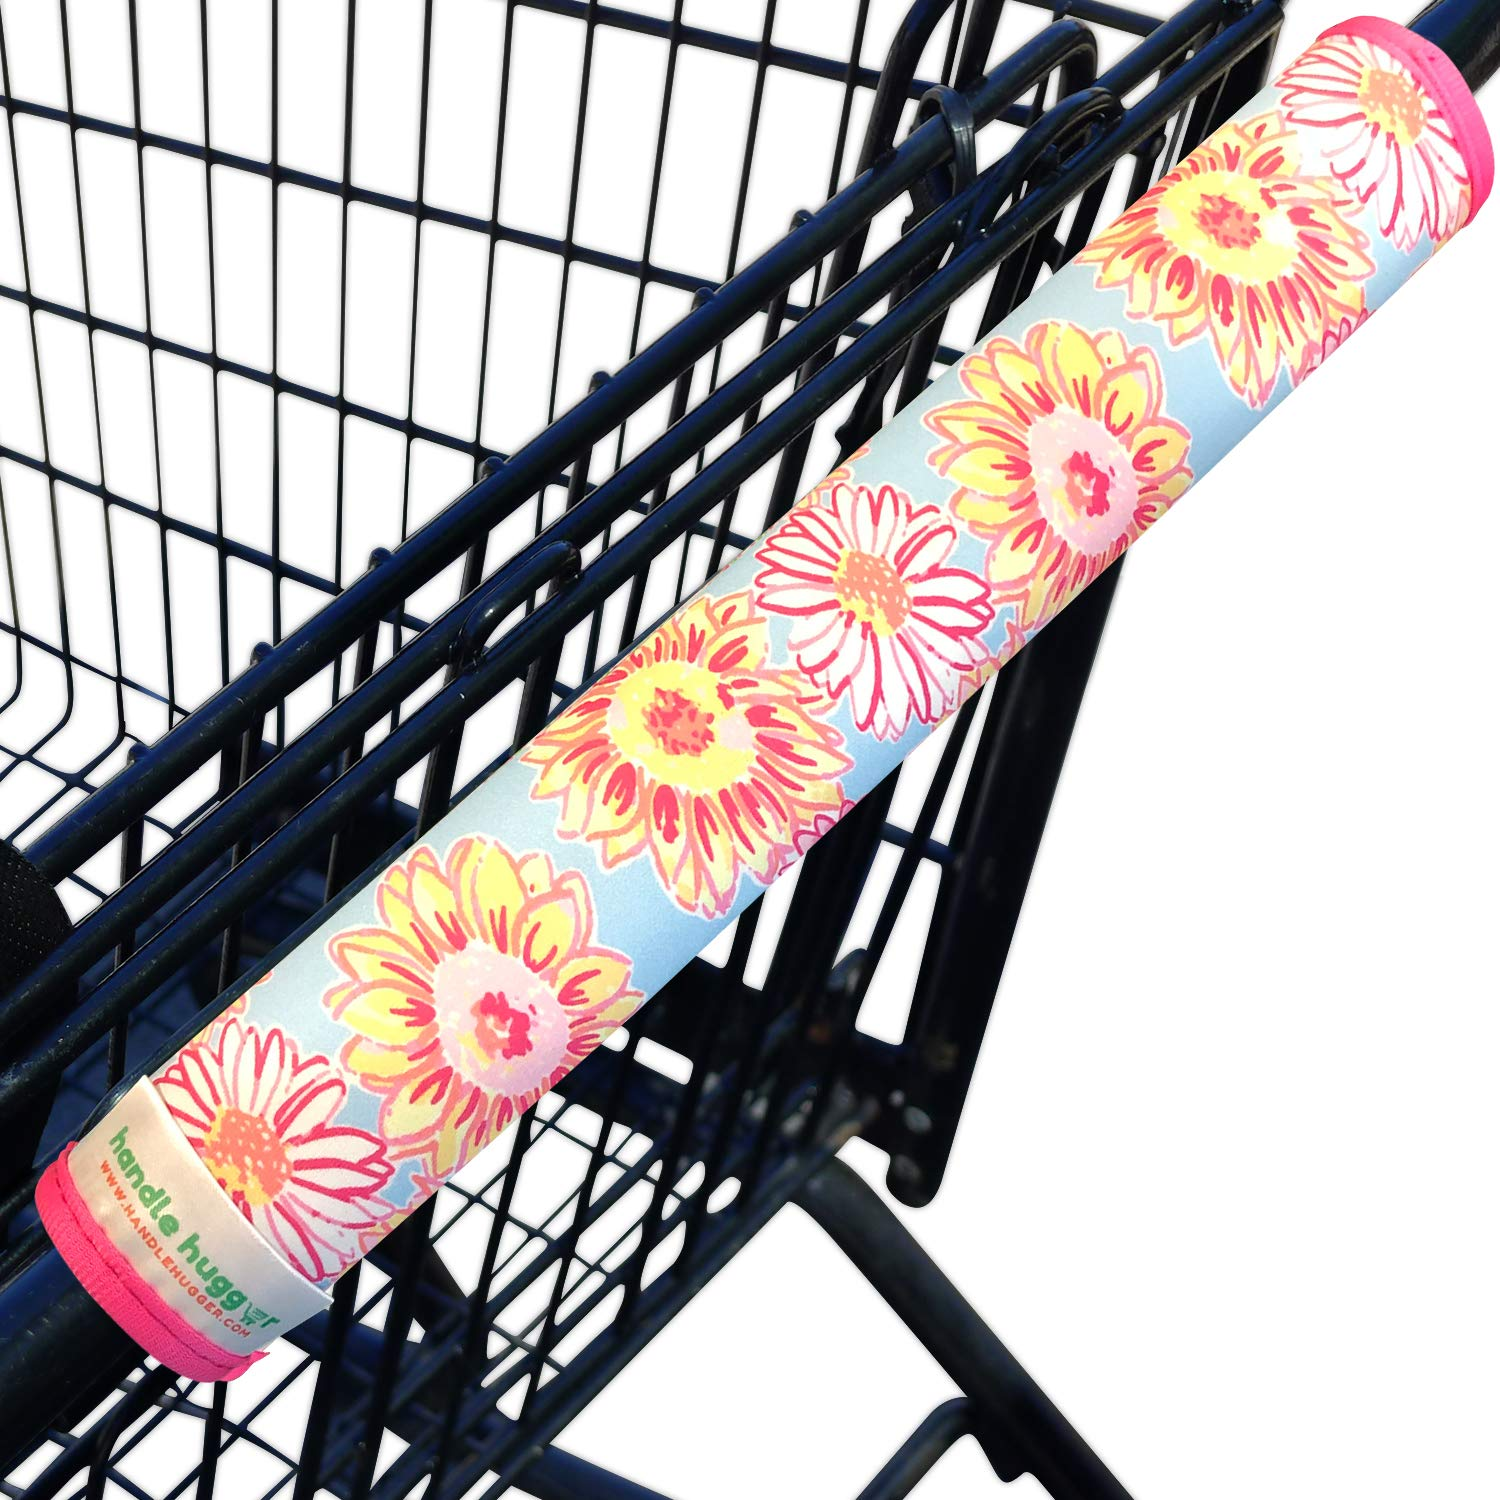 Shopping Cart Handle Cover by Handle Hugger for Grocery, Trolley, Buggy, Carriage, or Supermercado Handles | Travel Accessory | Kid Friendly | Reversible, Compact,Reusable, Washable (Sunflowers)